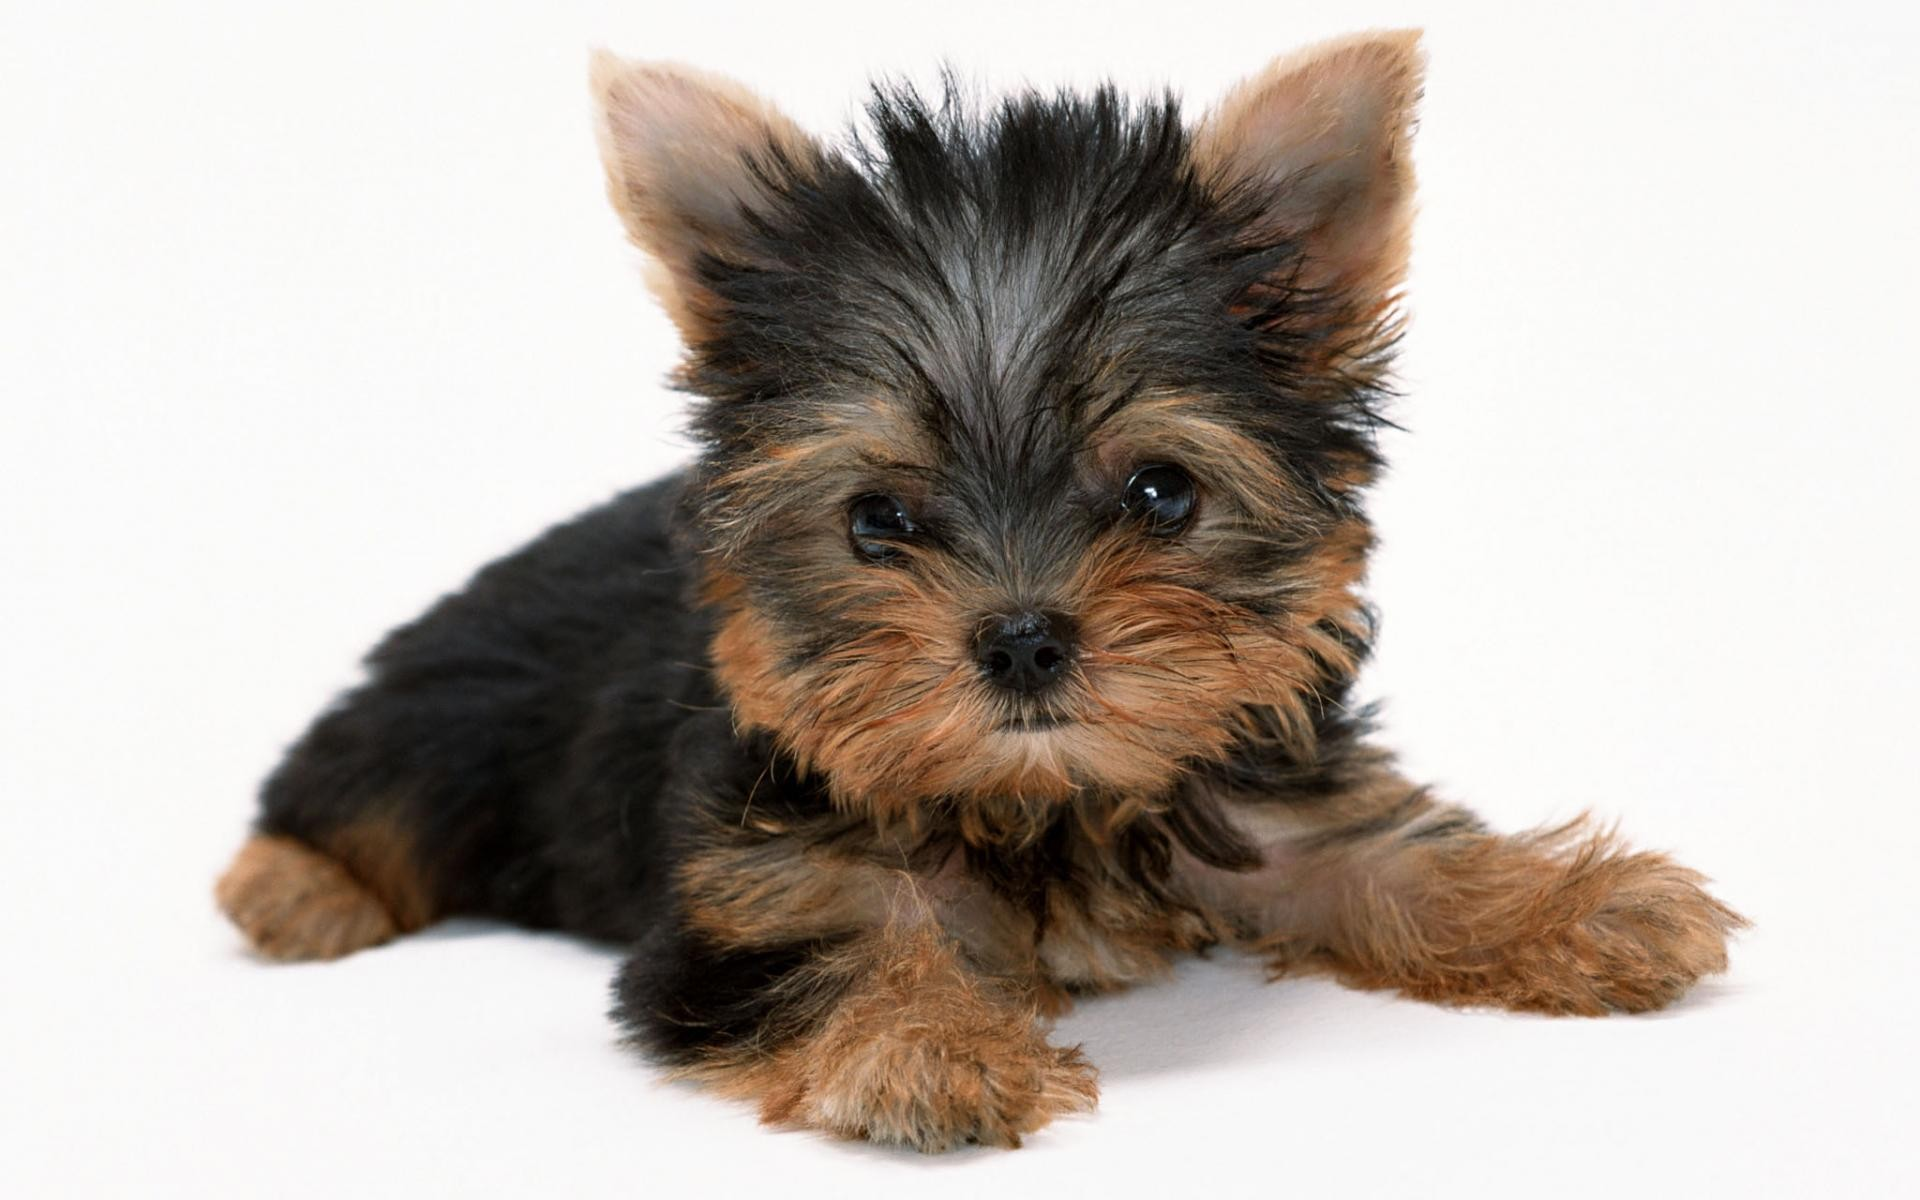 Cute Yorkie Puppies   Wallpaper High Definition High Quality 1920x1200